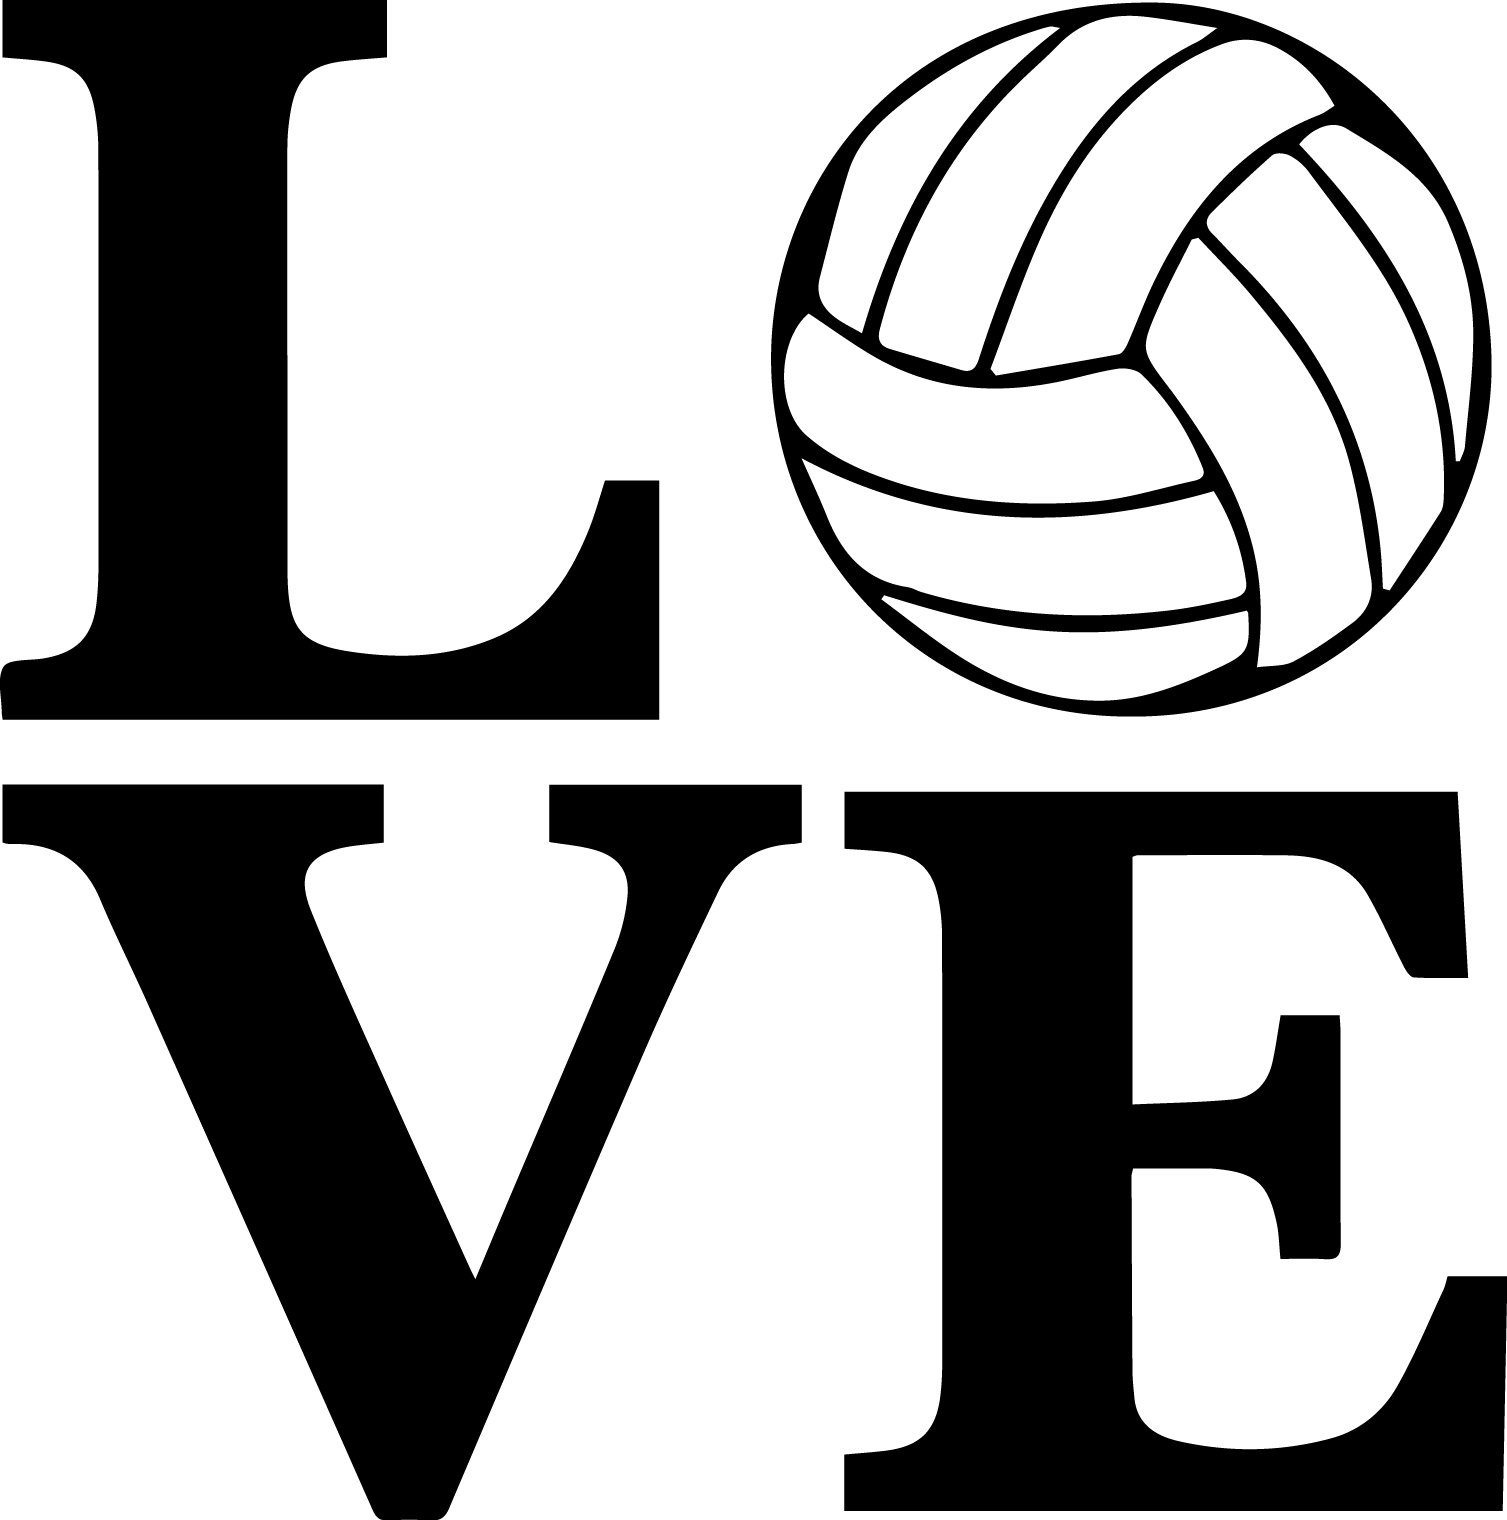 Love Volleyball Vinyl Decal.